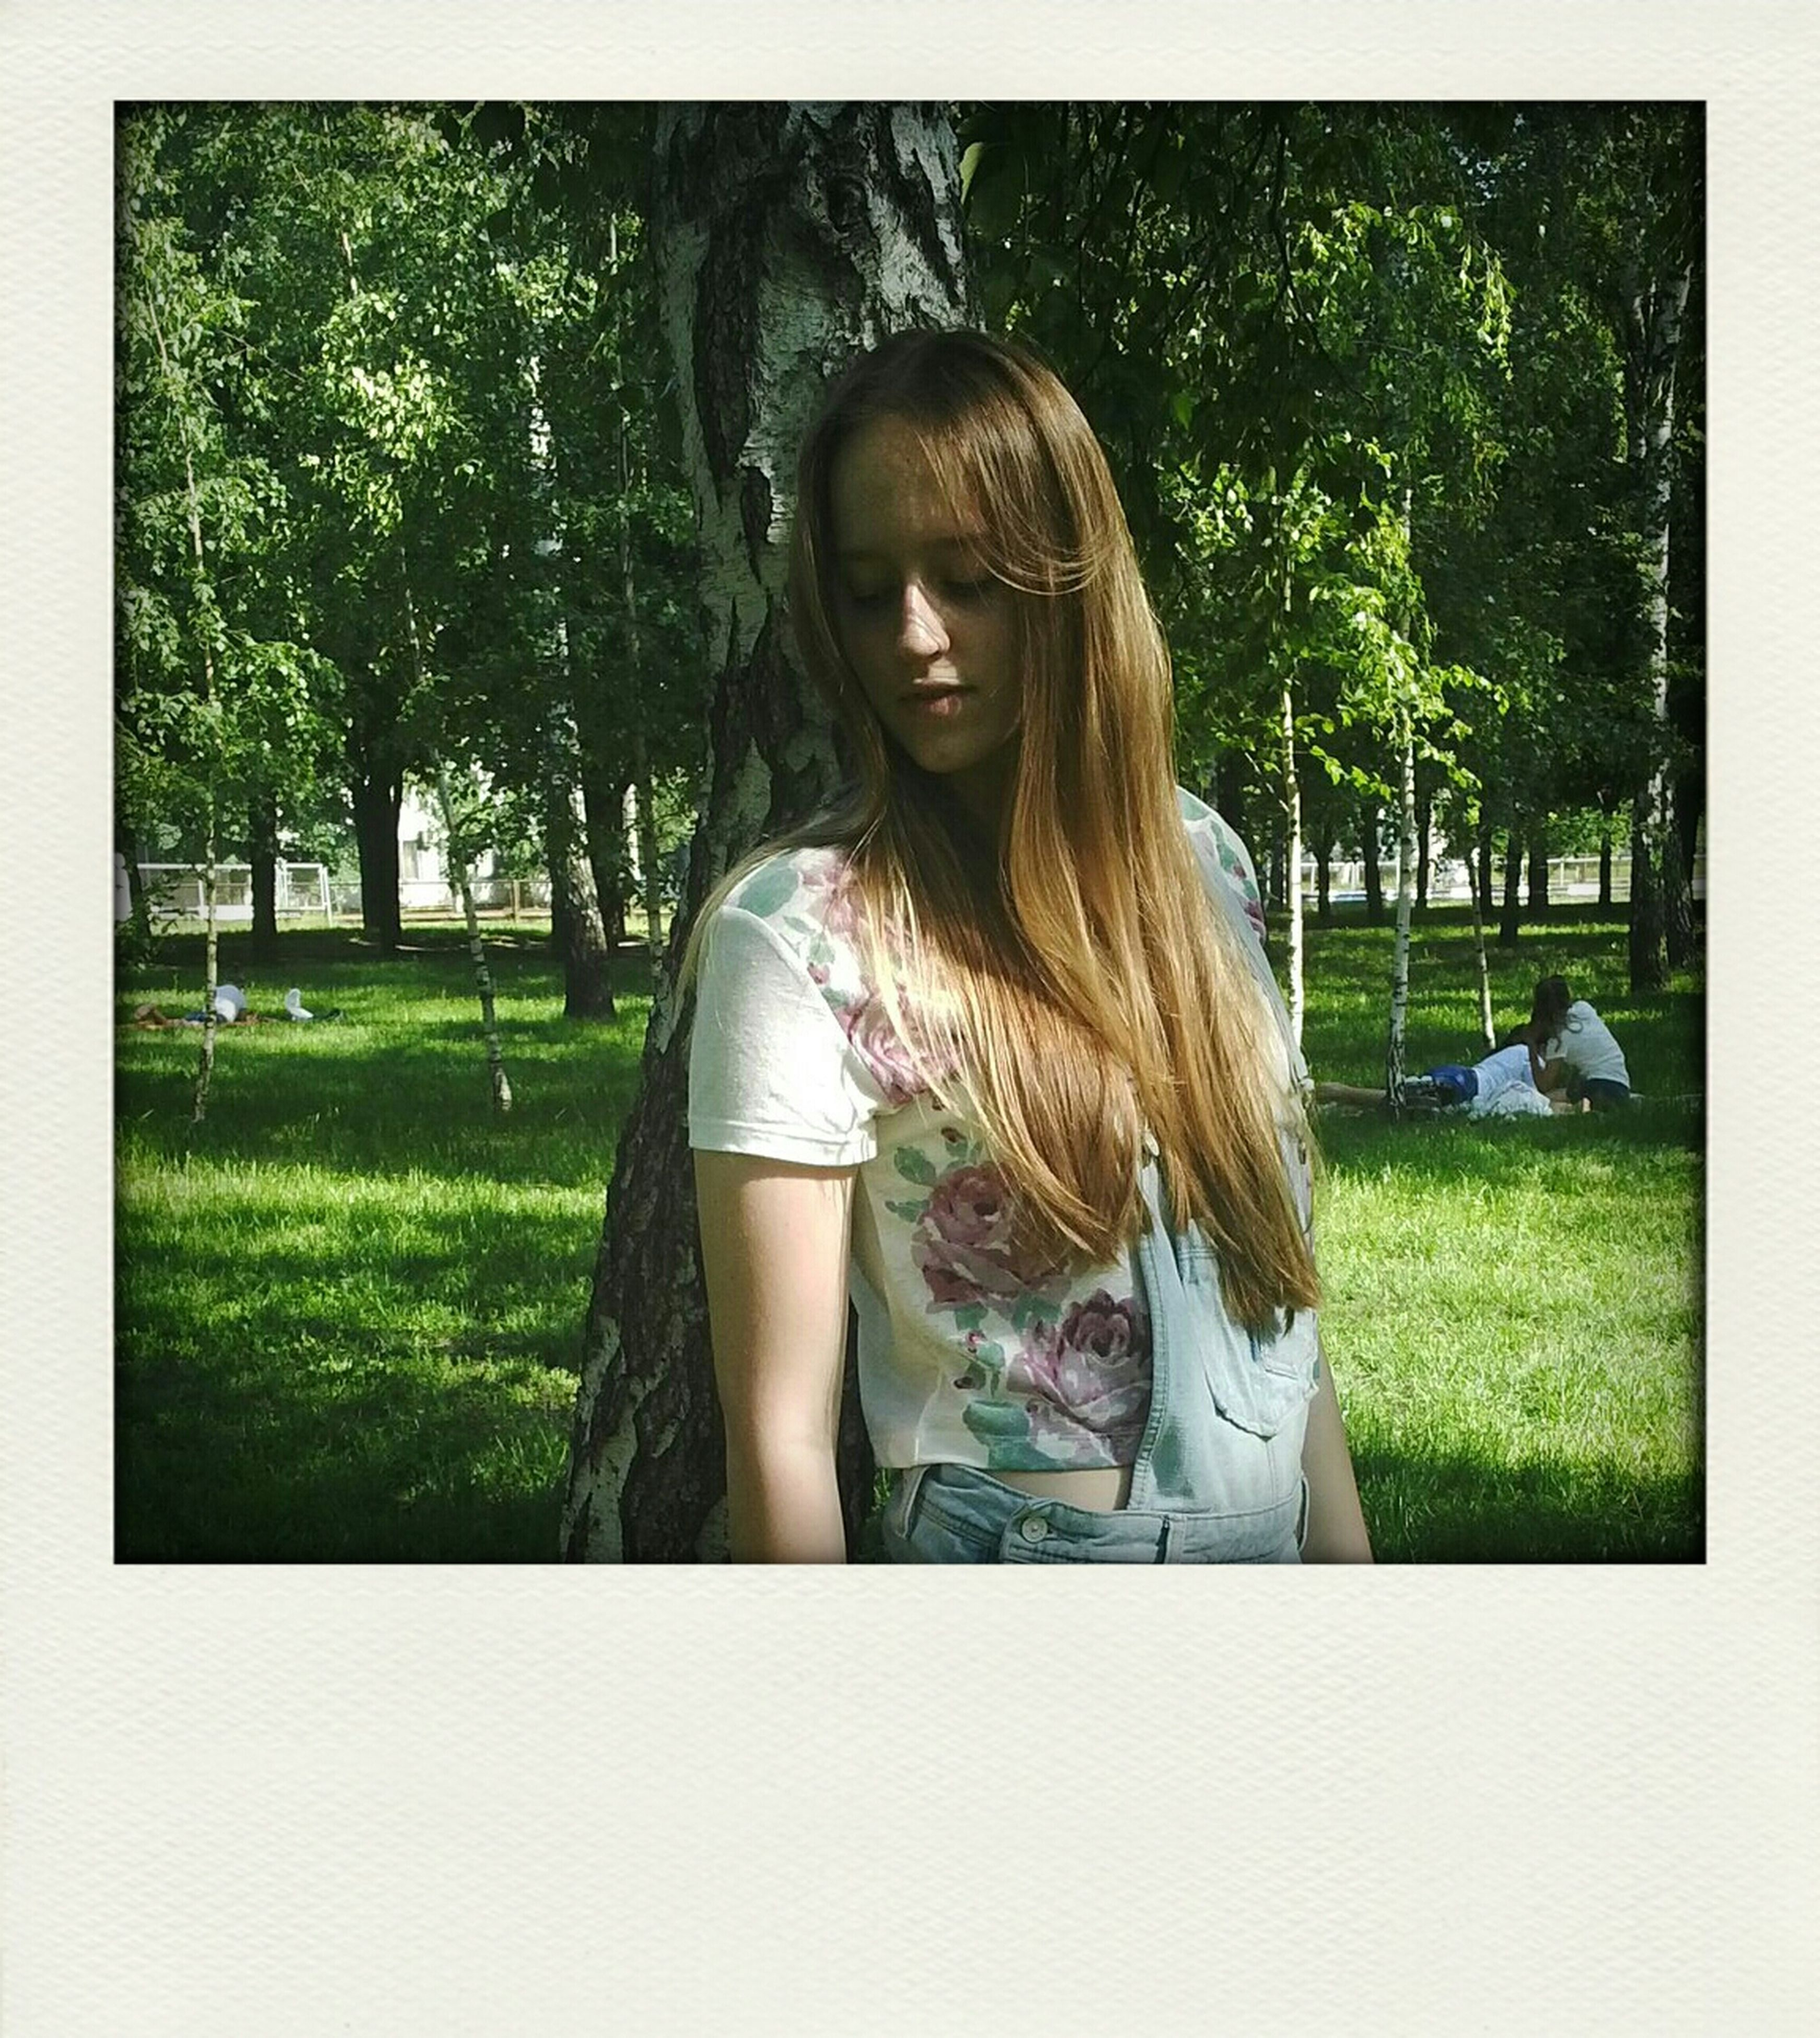 tree, young adult, grass, person, lifestyles, young women, casual clothing, leisure activity, park - man made space, long hair, portrait, standing, transfer print, looking at camera, front view, auto post production filter, park